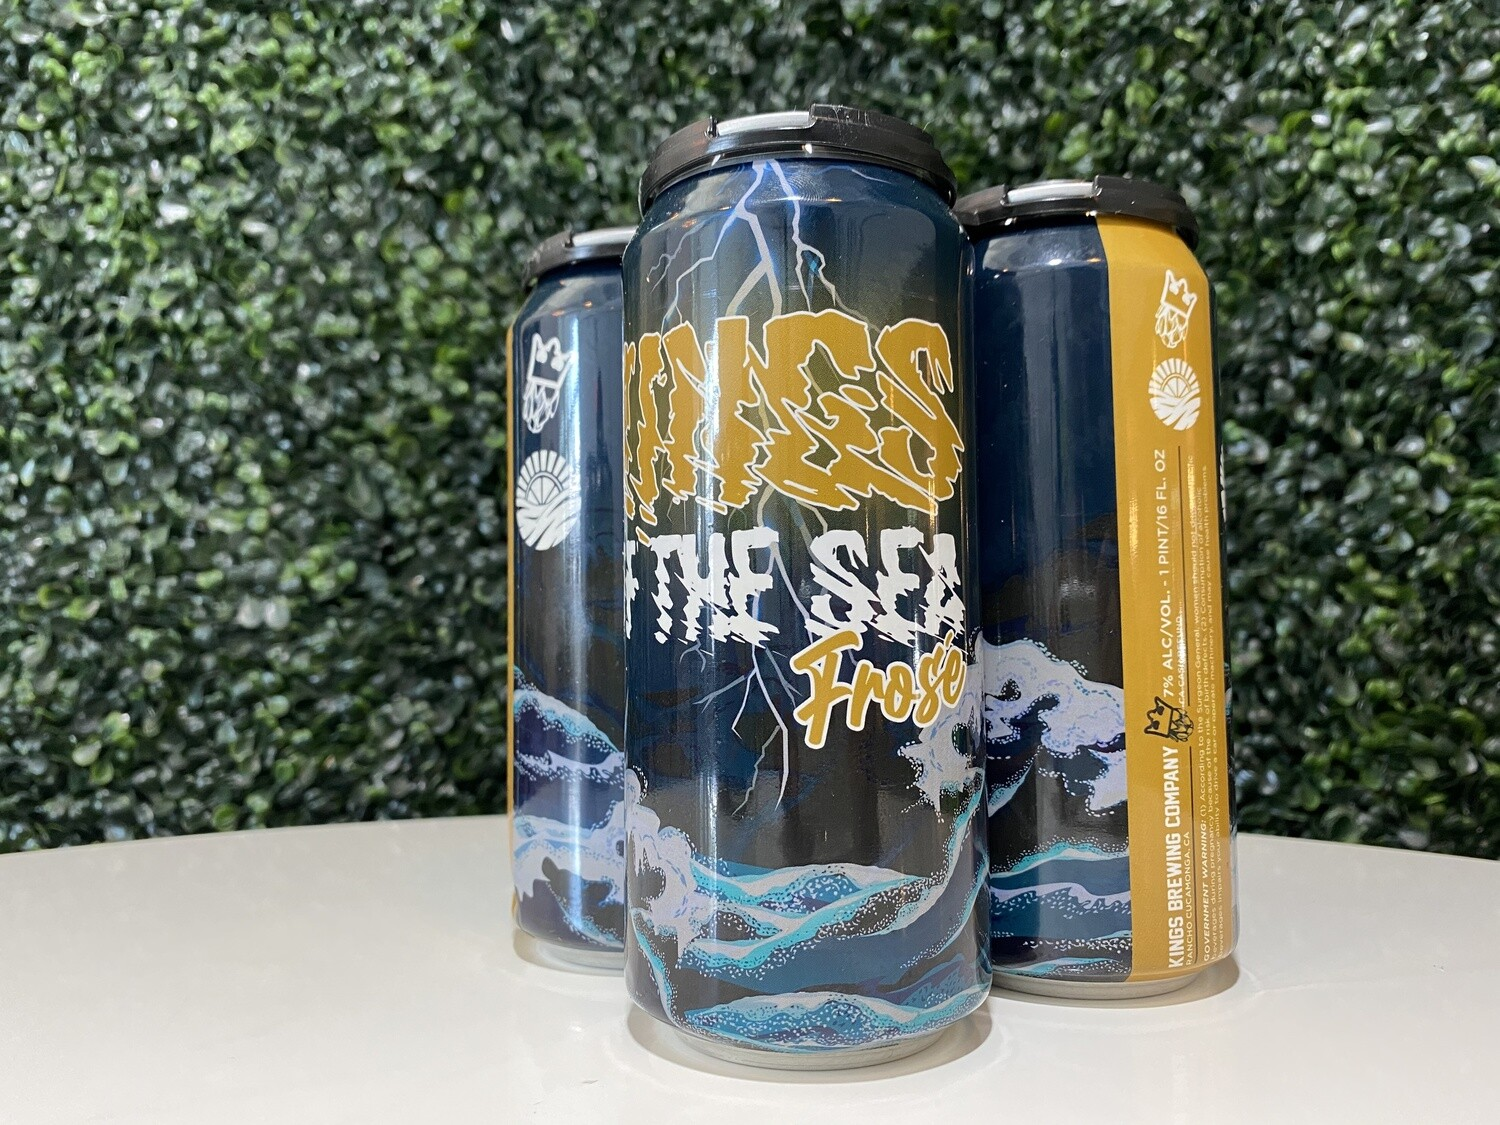 Kings Brewing Company - King's of Sea Frose - Fruited Sour - 7% ABV - 16oz Can